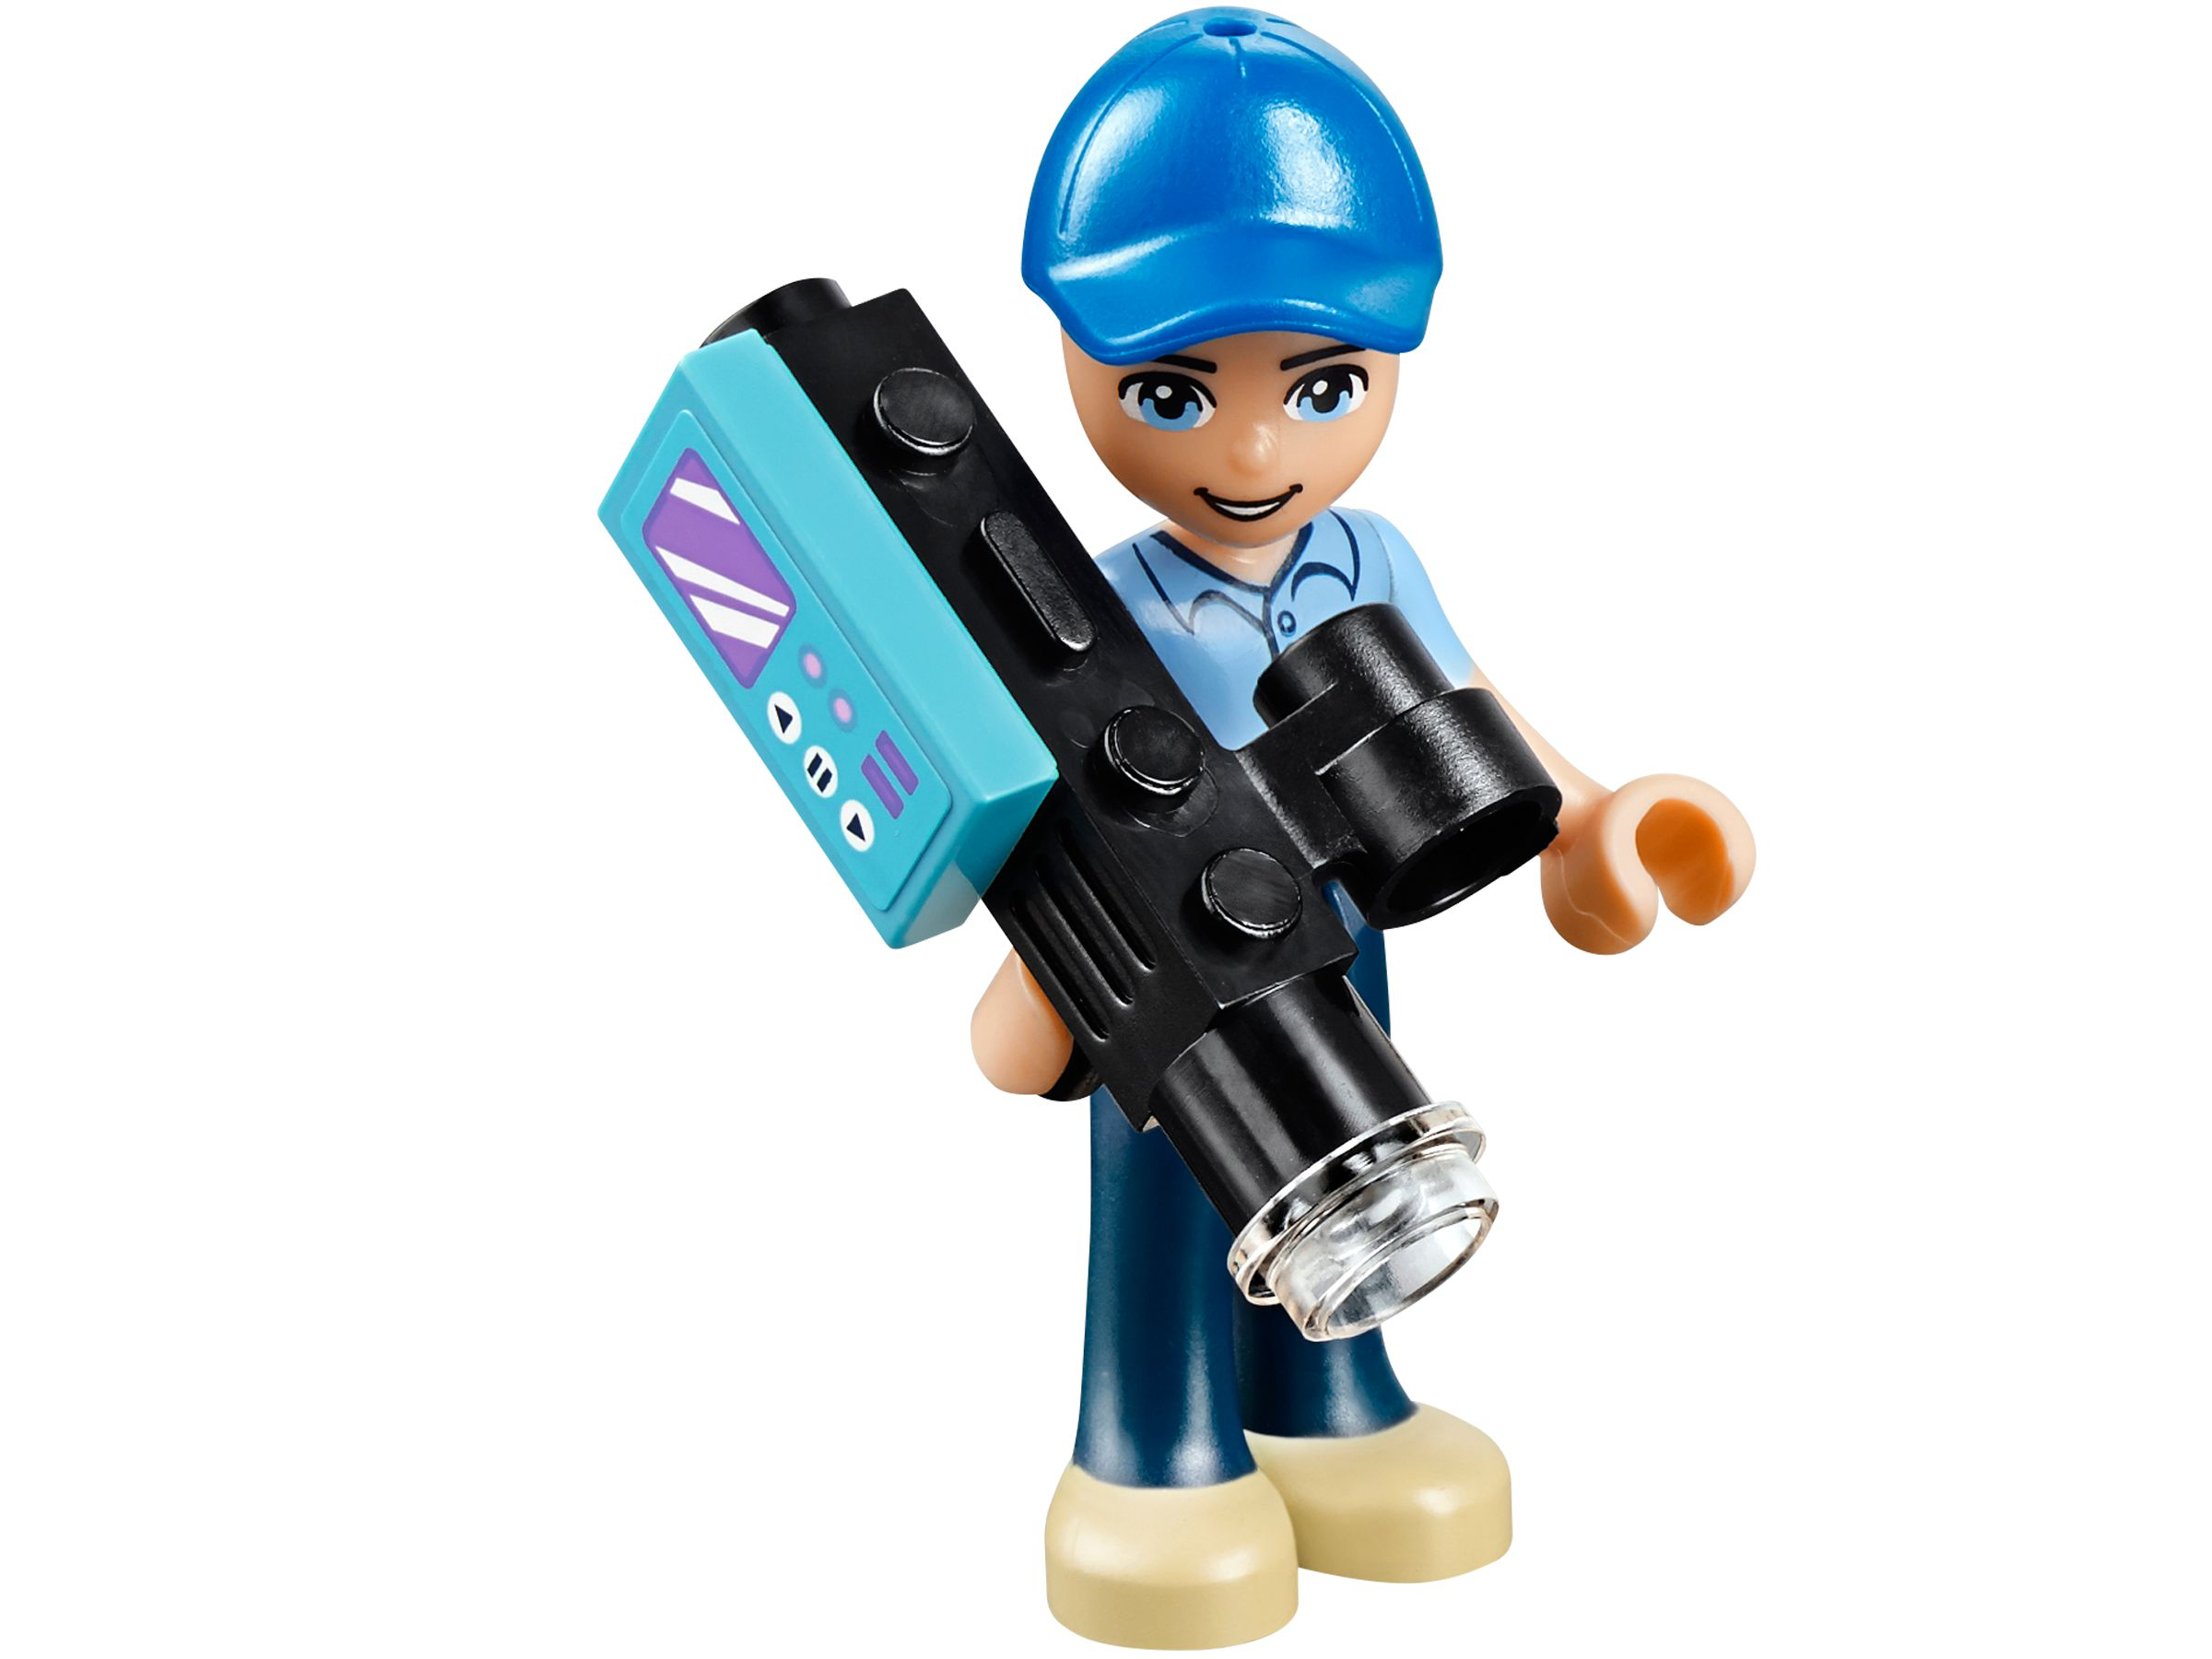 LEGO Friends 41056 Mobile Fernsehstation LEGO_41056_alt3.jpg